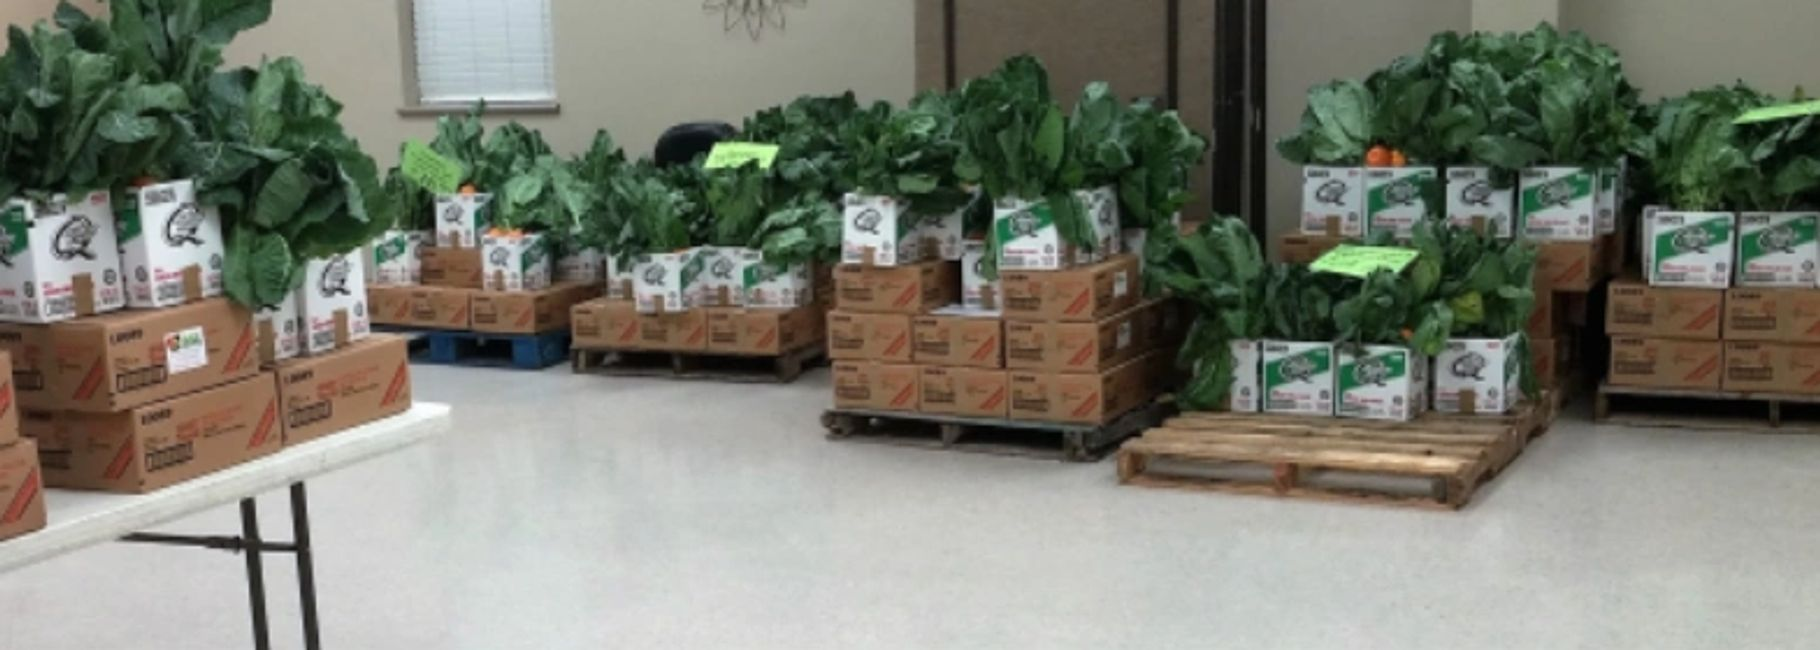 SNWP Distribution  - Boxed nonperishables and paper products with open box of fresh produce on top